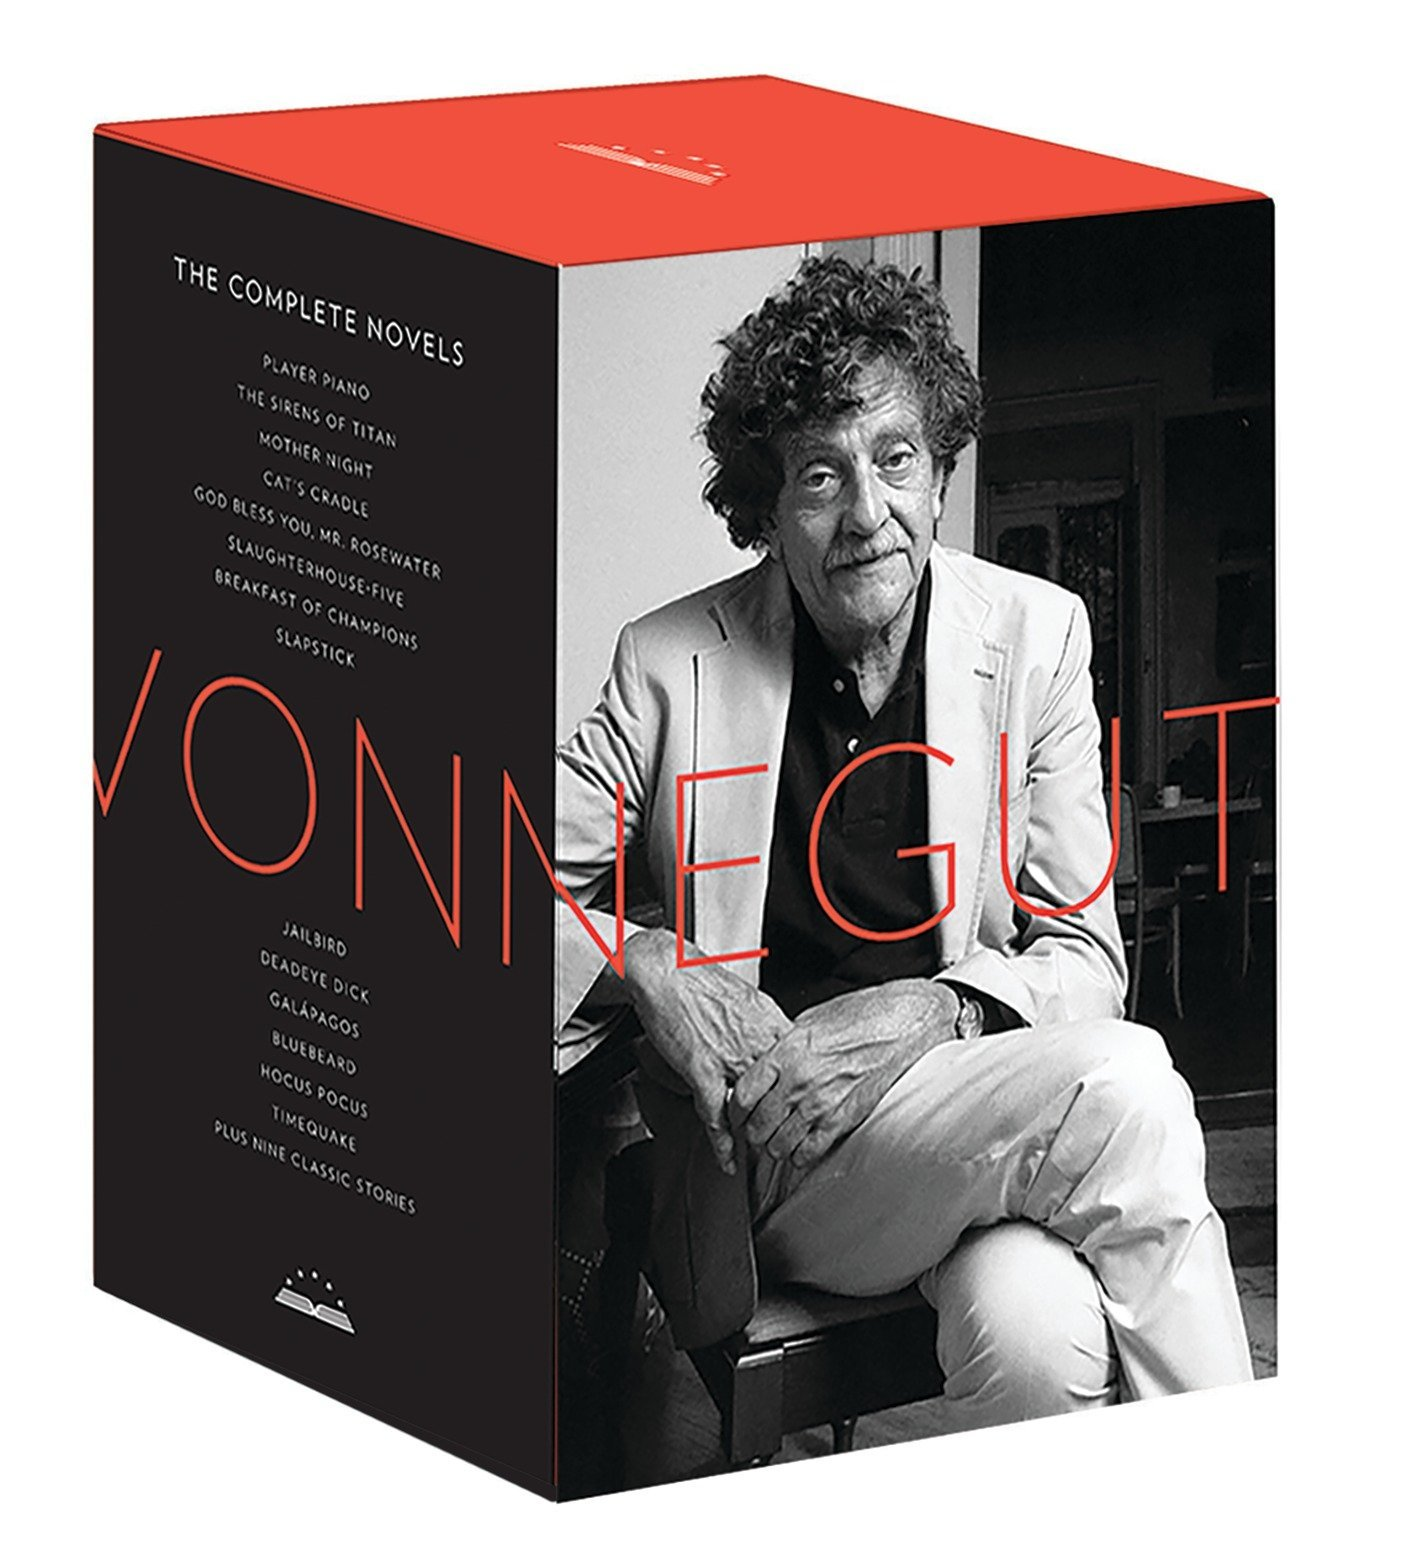 Kurt Vonnegut: The Complete Novels: A Library of America Boxed Set by Sidney Offit